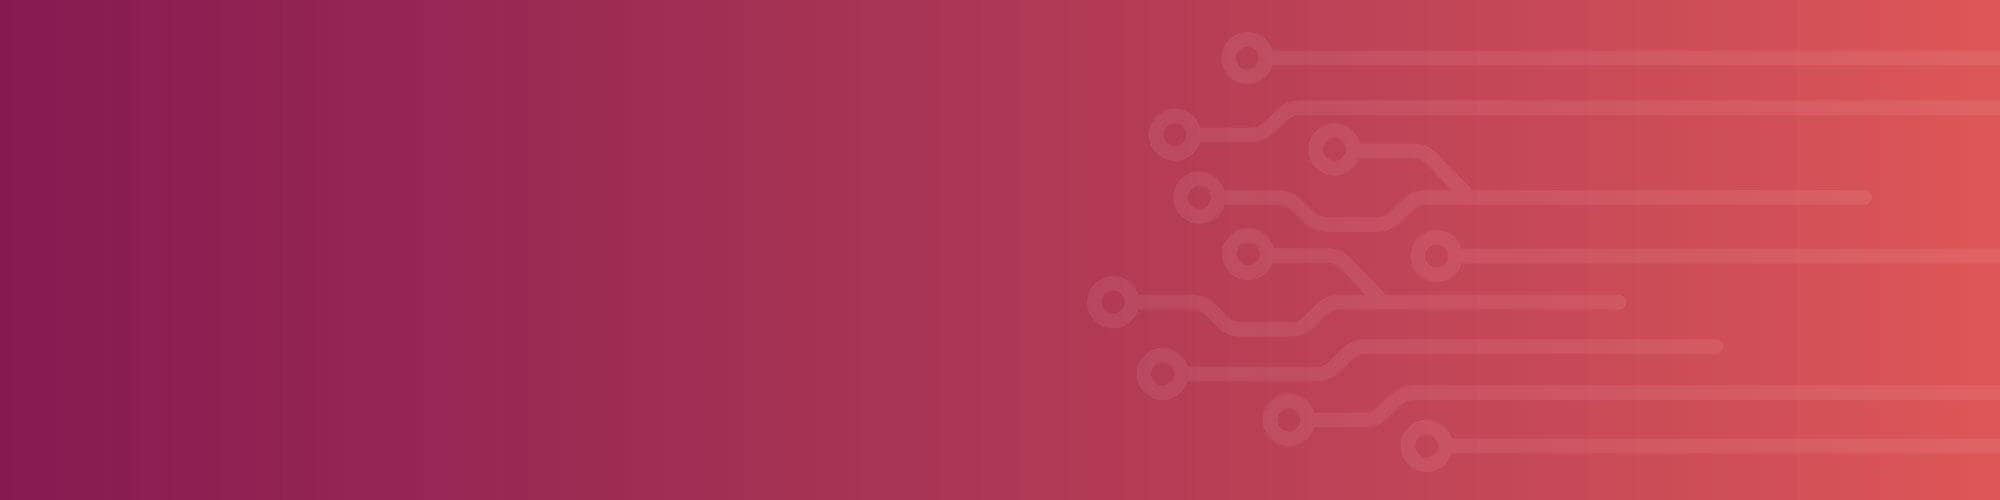 burgundy to pink gradient background with circuit pattern